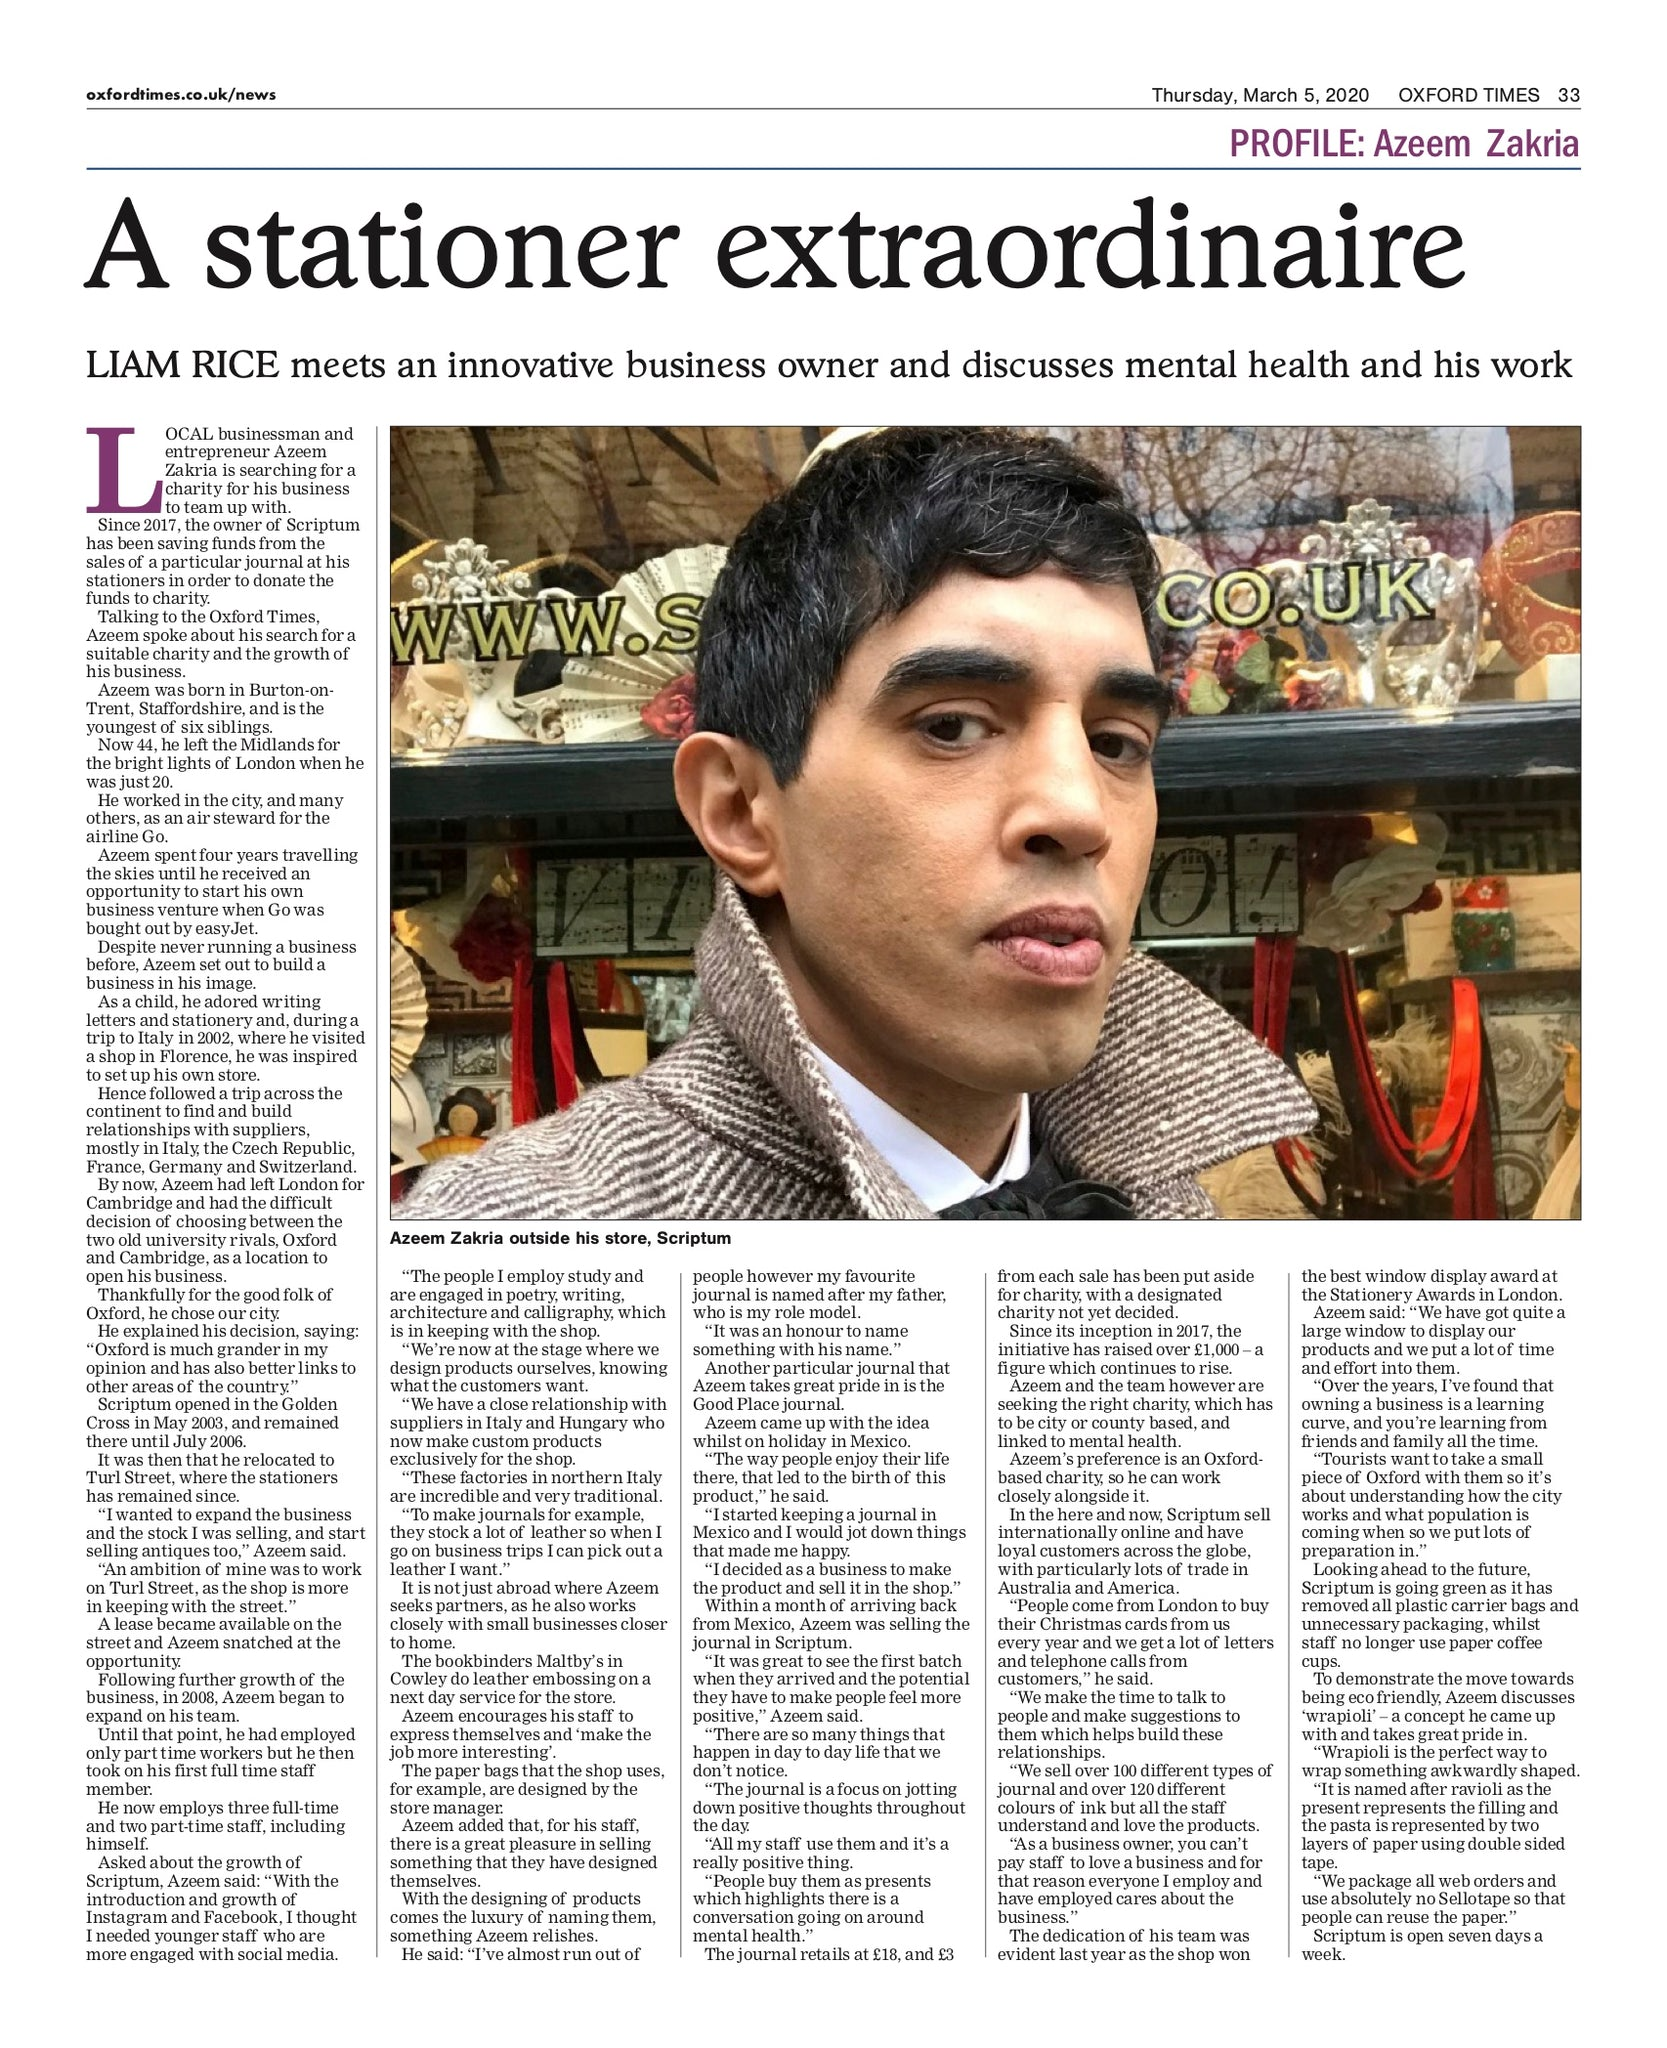 Oxford Times Interview